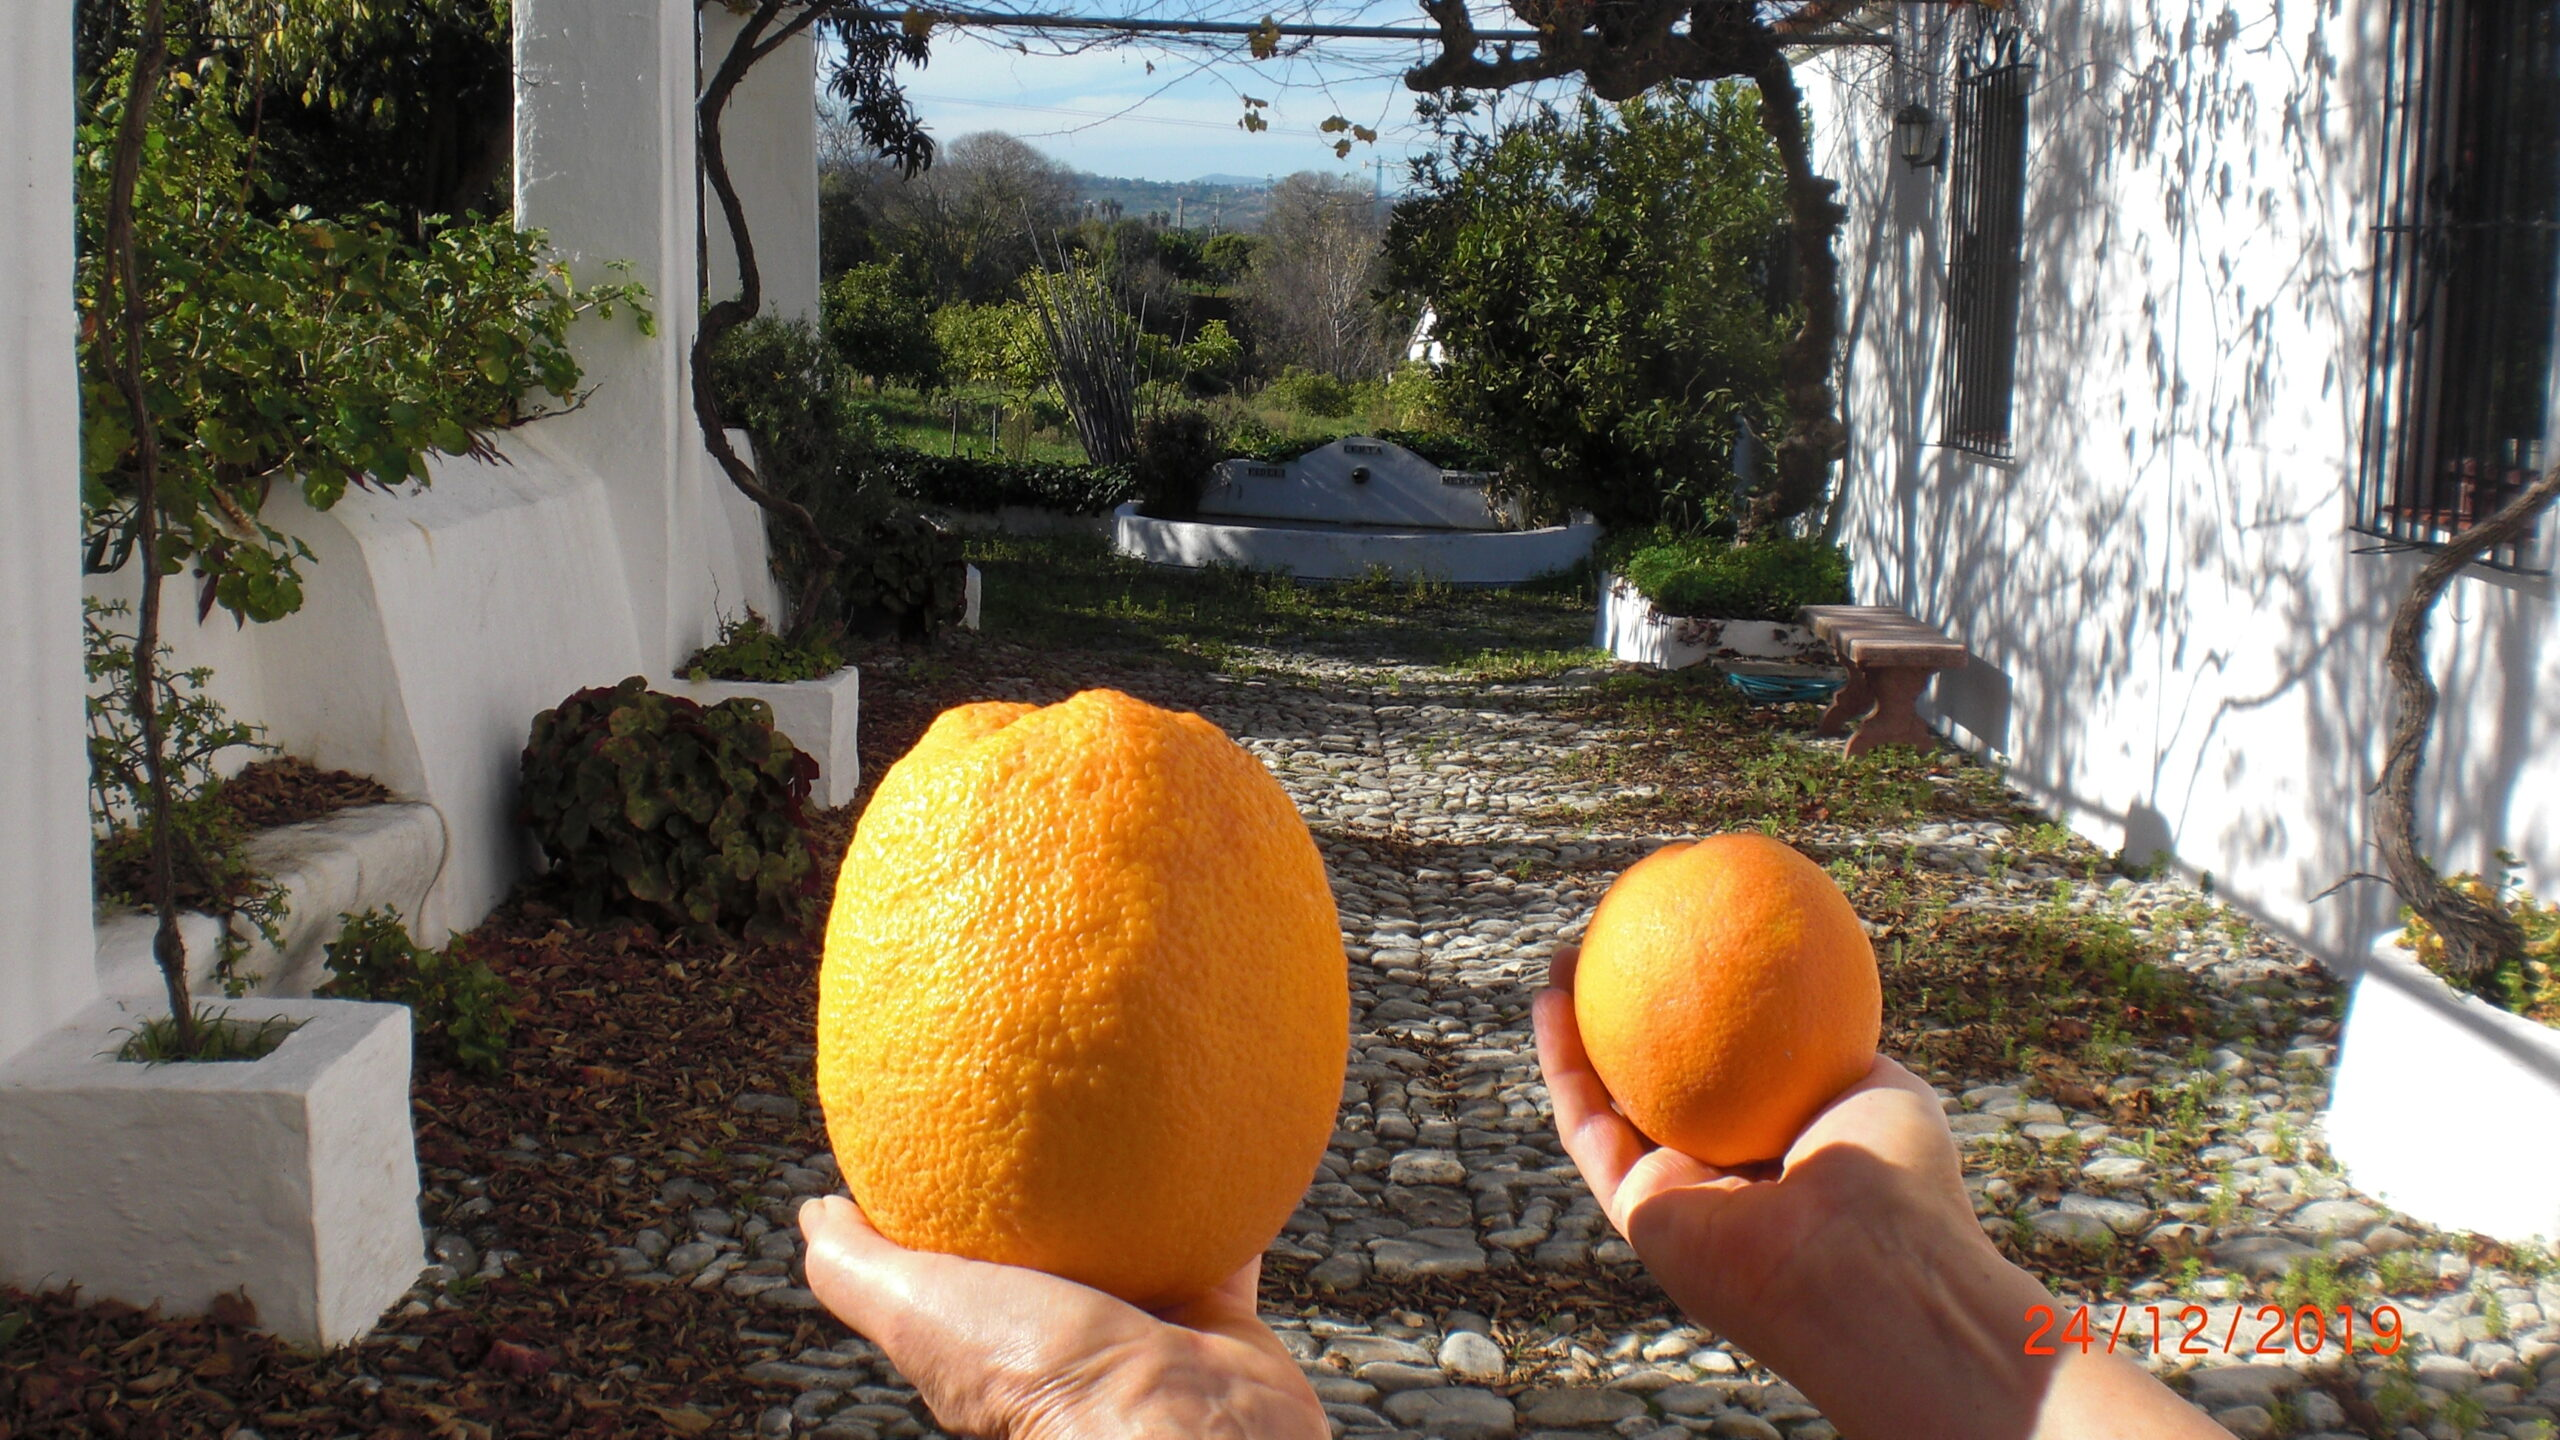 Compare between normal and a huge orange